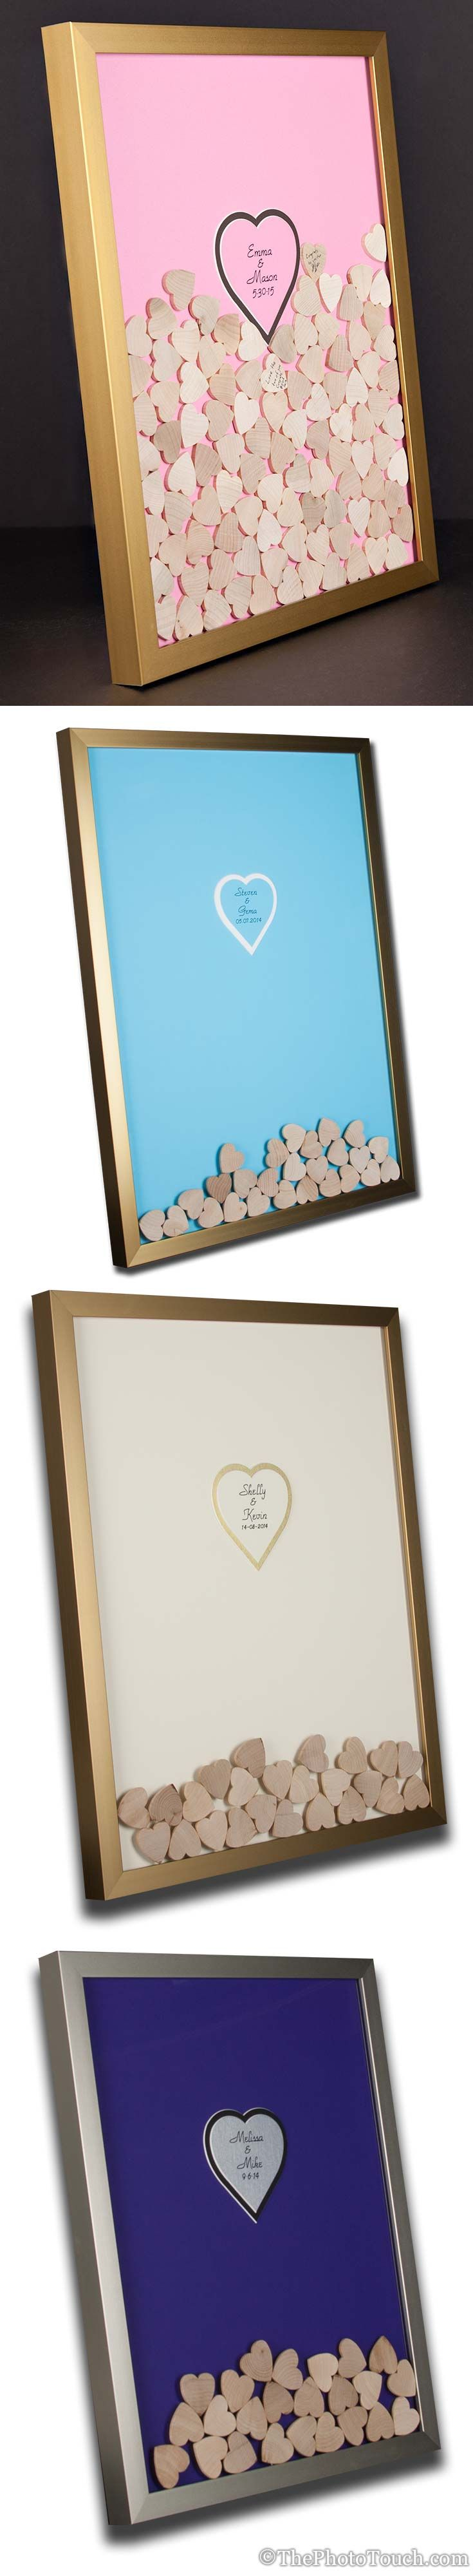 Wedding guest book alternative. Wooden hearts drop in frame. https://www.etsy.com/shop/WeddingGuestbook